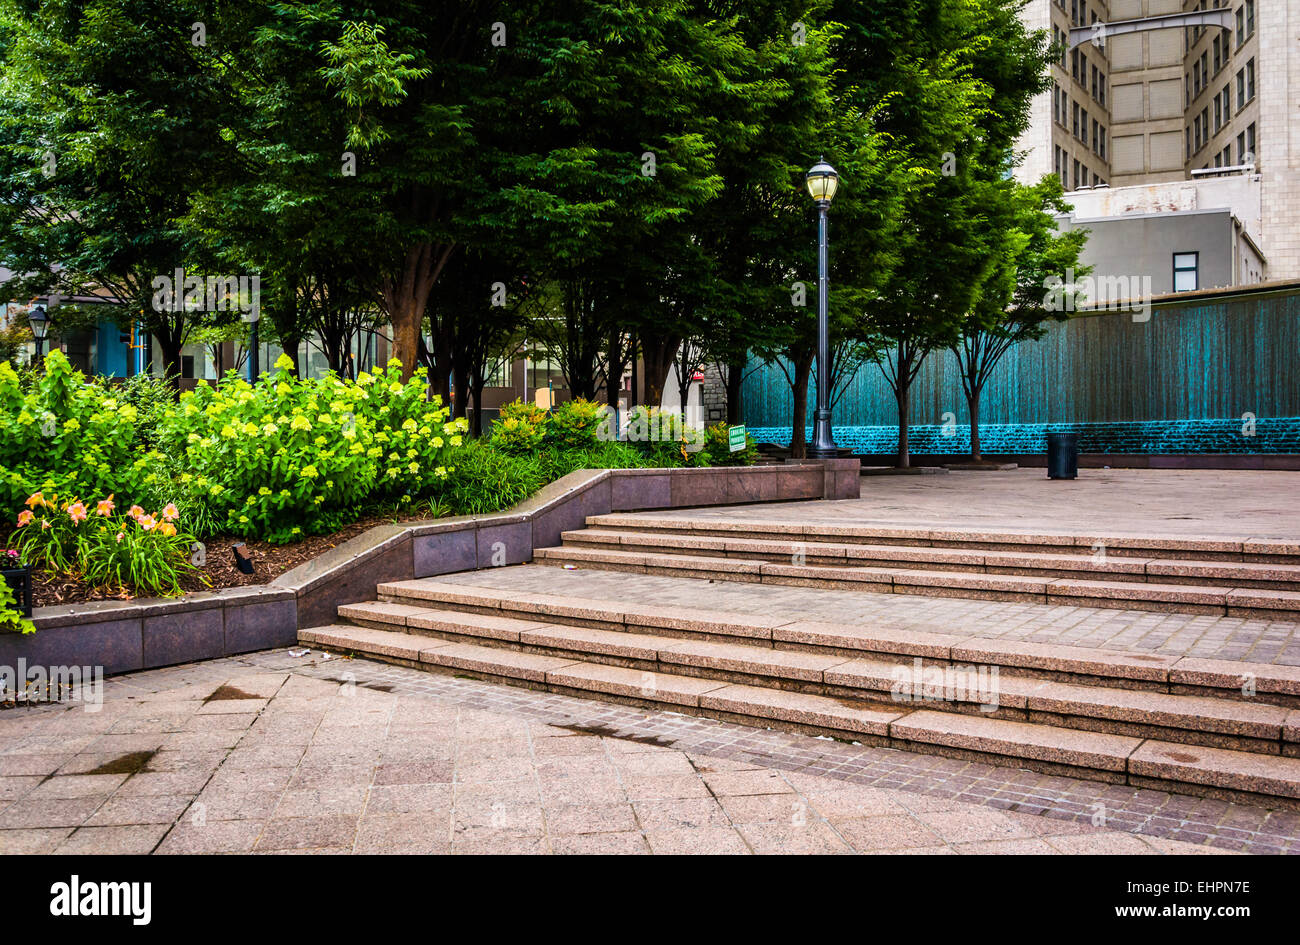 Fountains and garden at Woodruff Park in downtown Atlanta, Georgia. - Stock Image